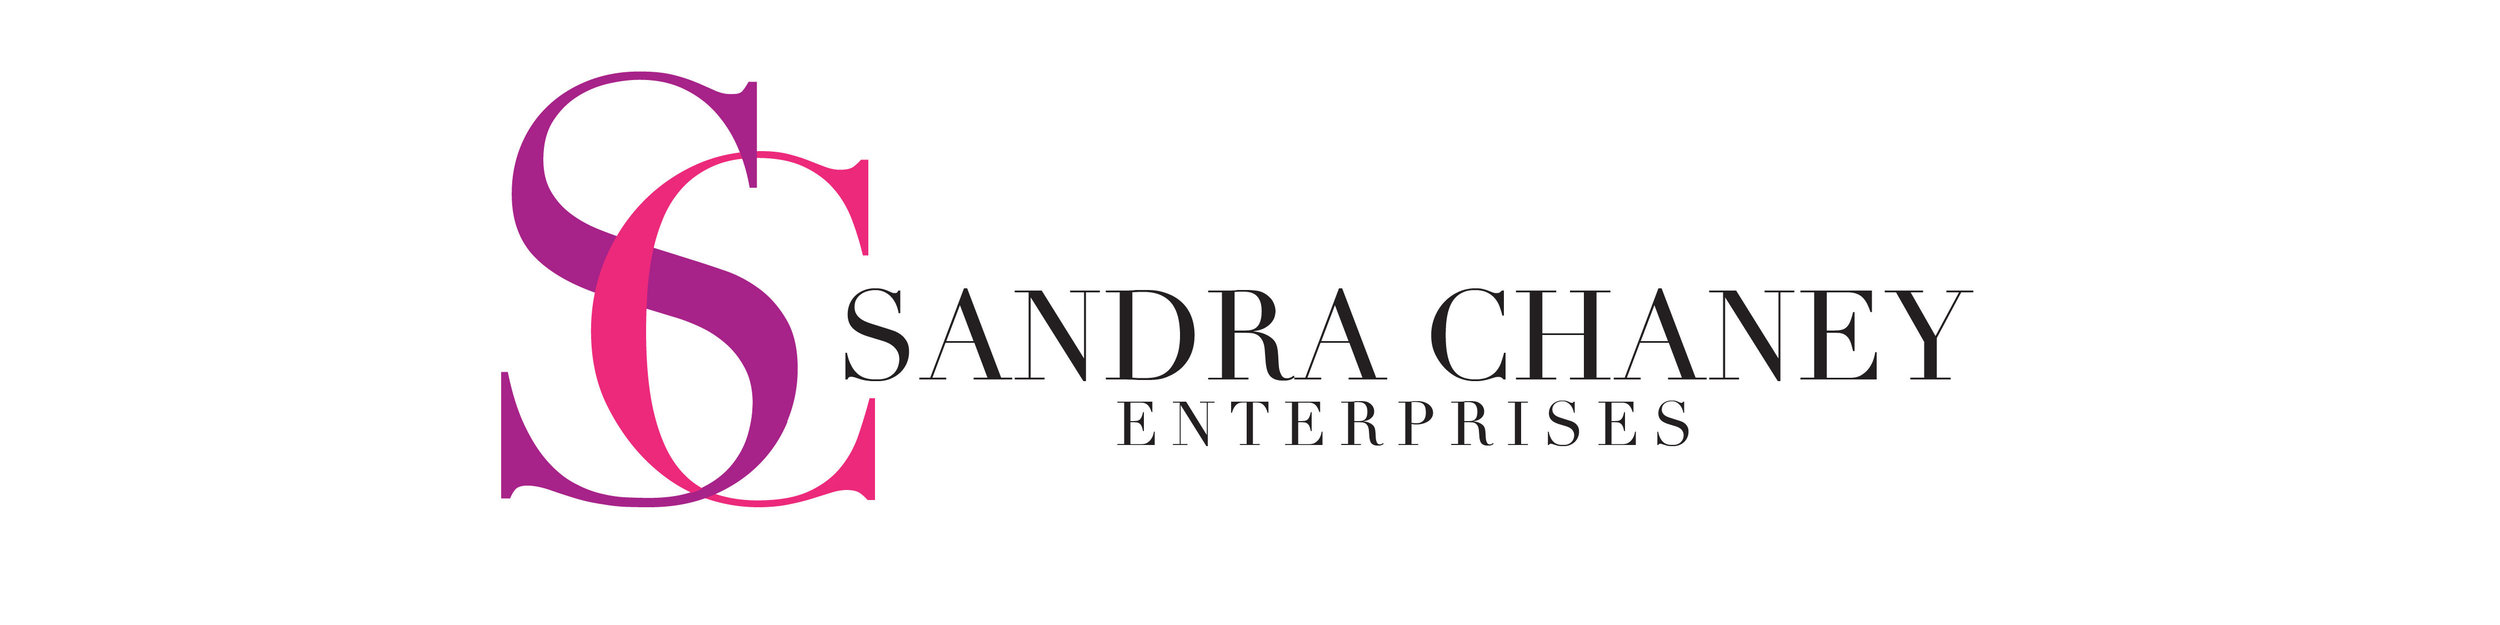 cropped-SandraChaney_logos-03.jpg